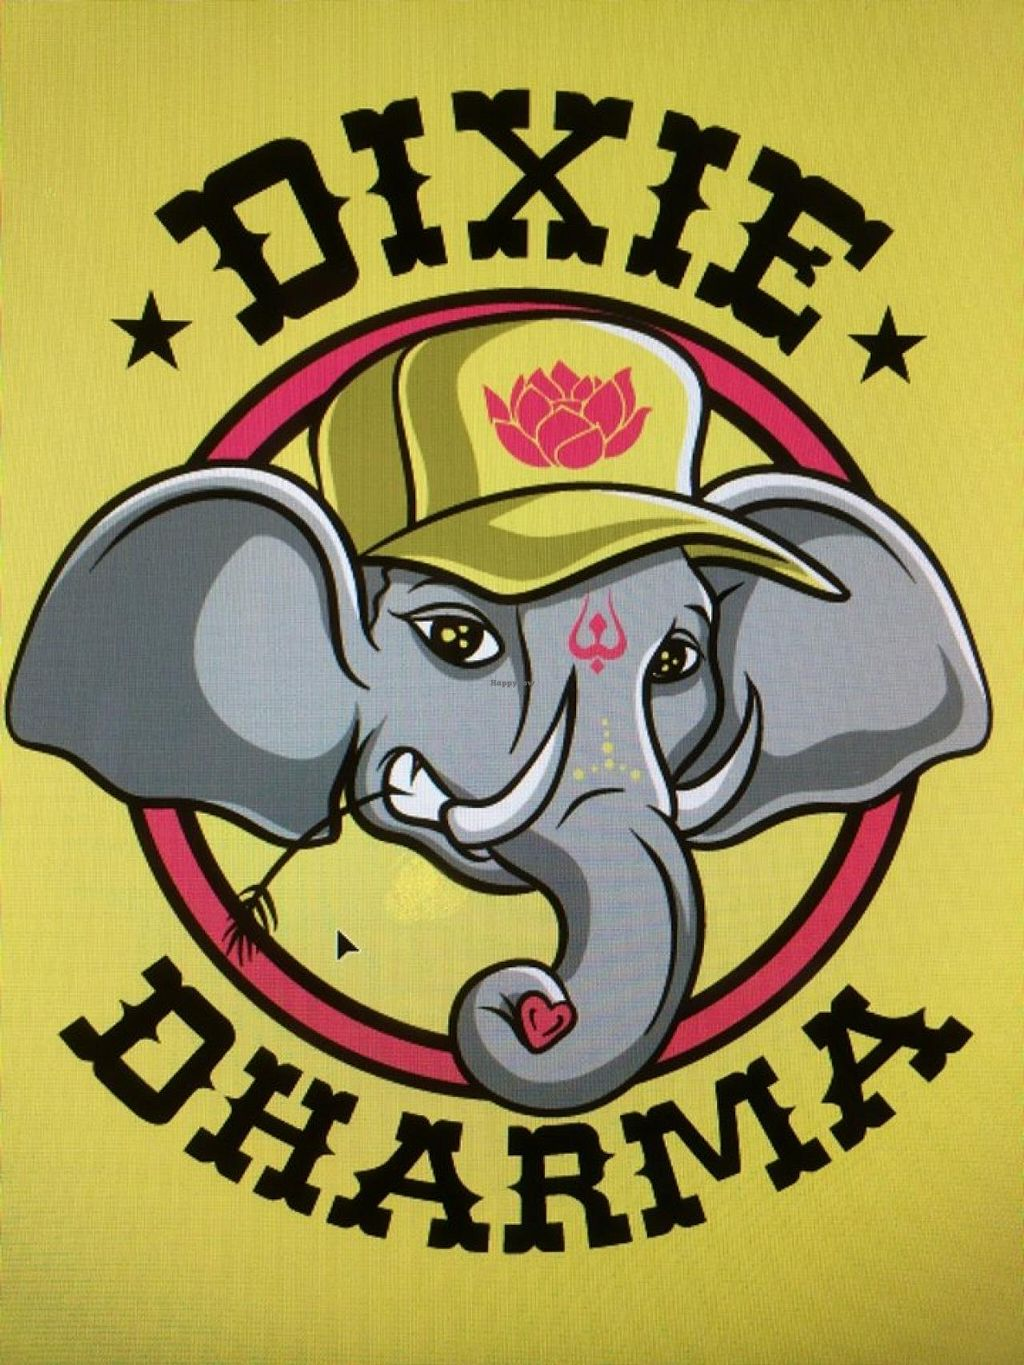 """Photo of Dixie Dharma - Market on South  by <a href=""""/members/profile/DixieDharma"""">DixieDharma</a> <br/>Dixie Dharma <br/> November 16, 2014  - <a href='/contact/abuse/image/52602/85808'>Report</a>"""